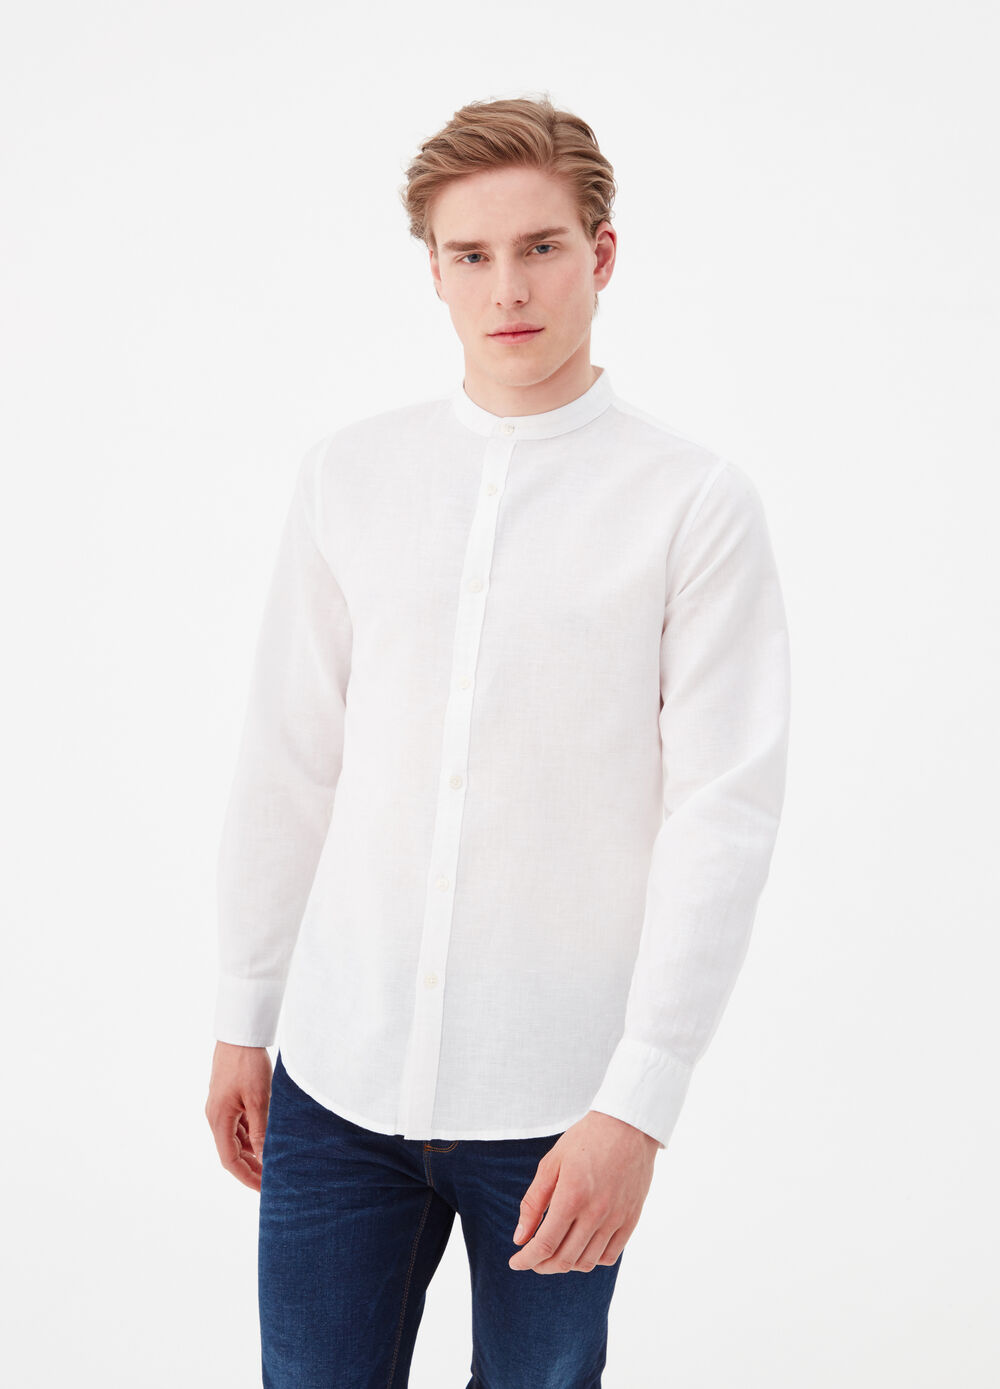 T-shirt with mandarin collar and pockets